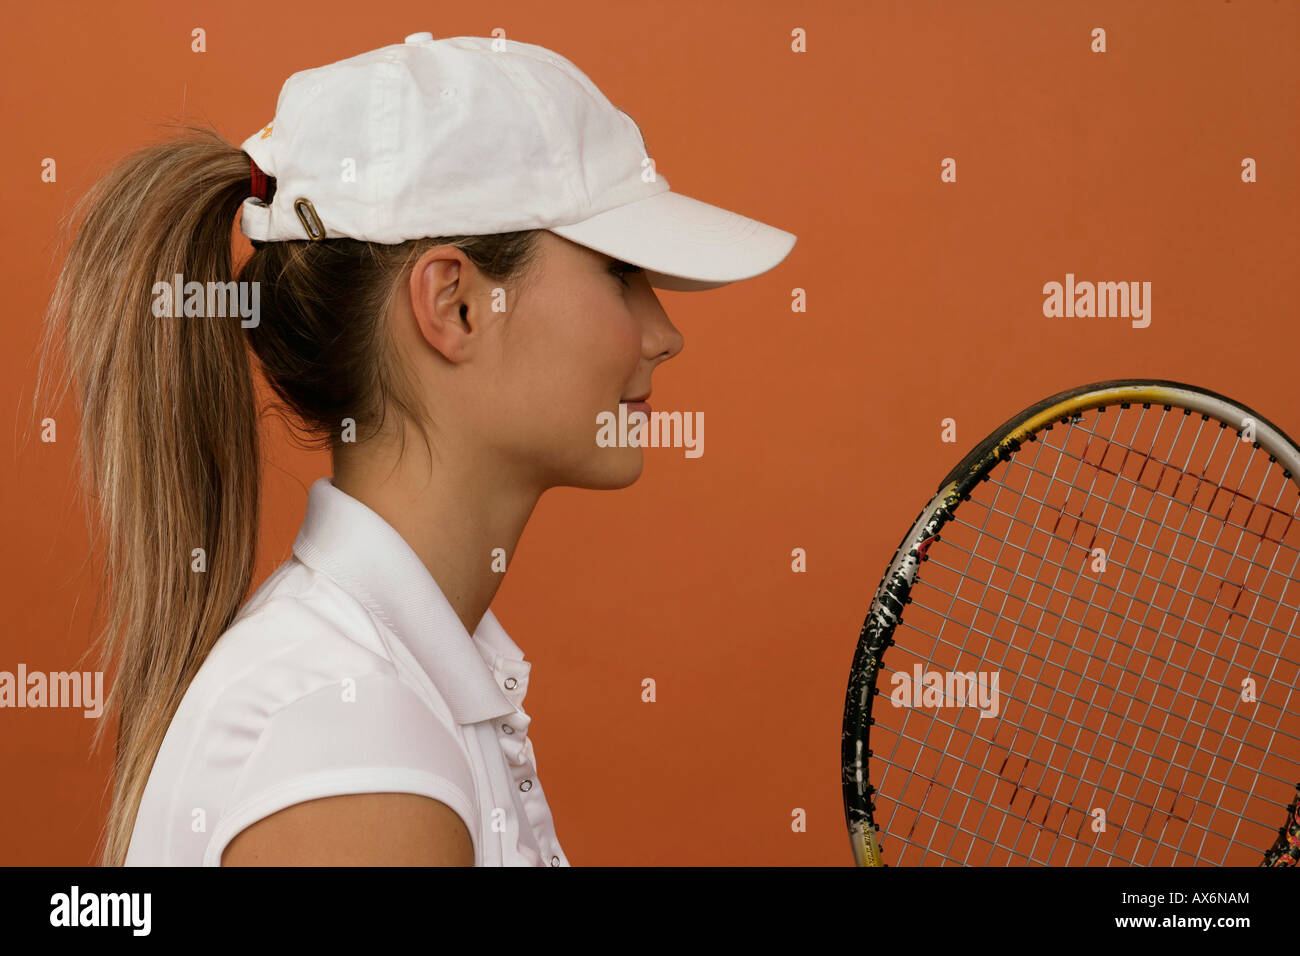 8ff489956 A female tennis player wearing a cap and holding a racket Stock ...